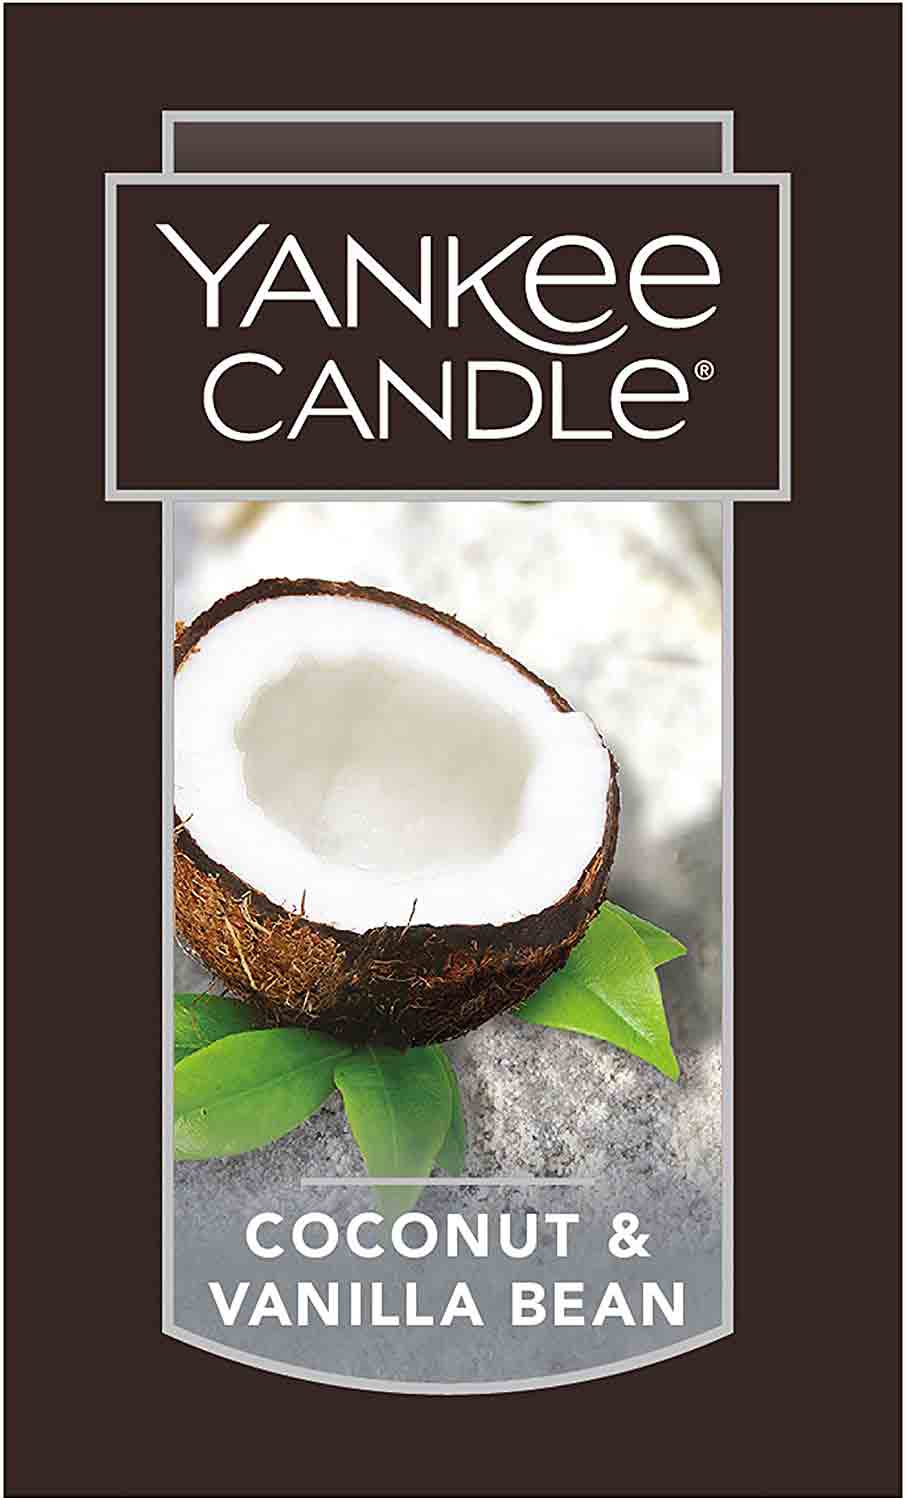 Crumble vosk Yankee Candle Coconut and Vanilla Bean USA 22 g